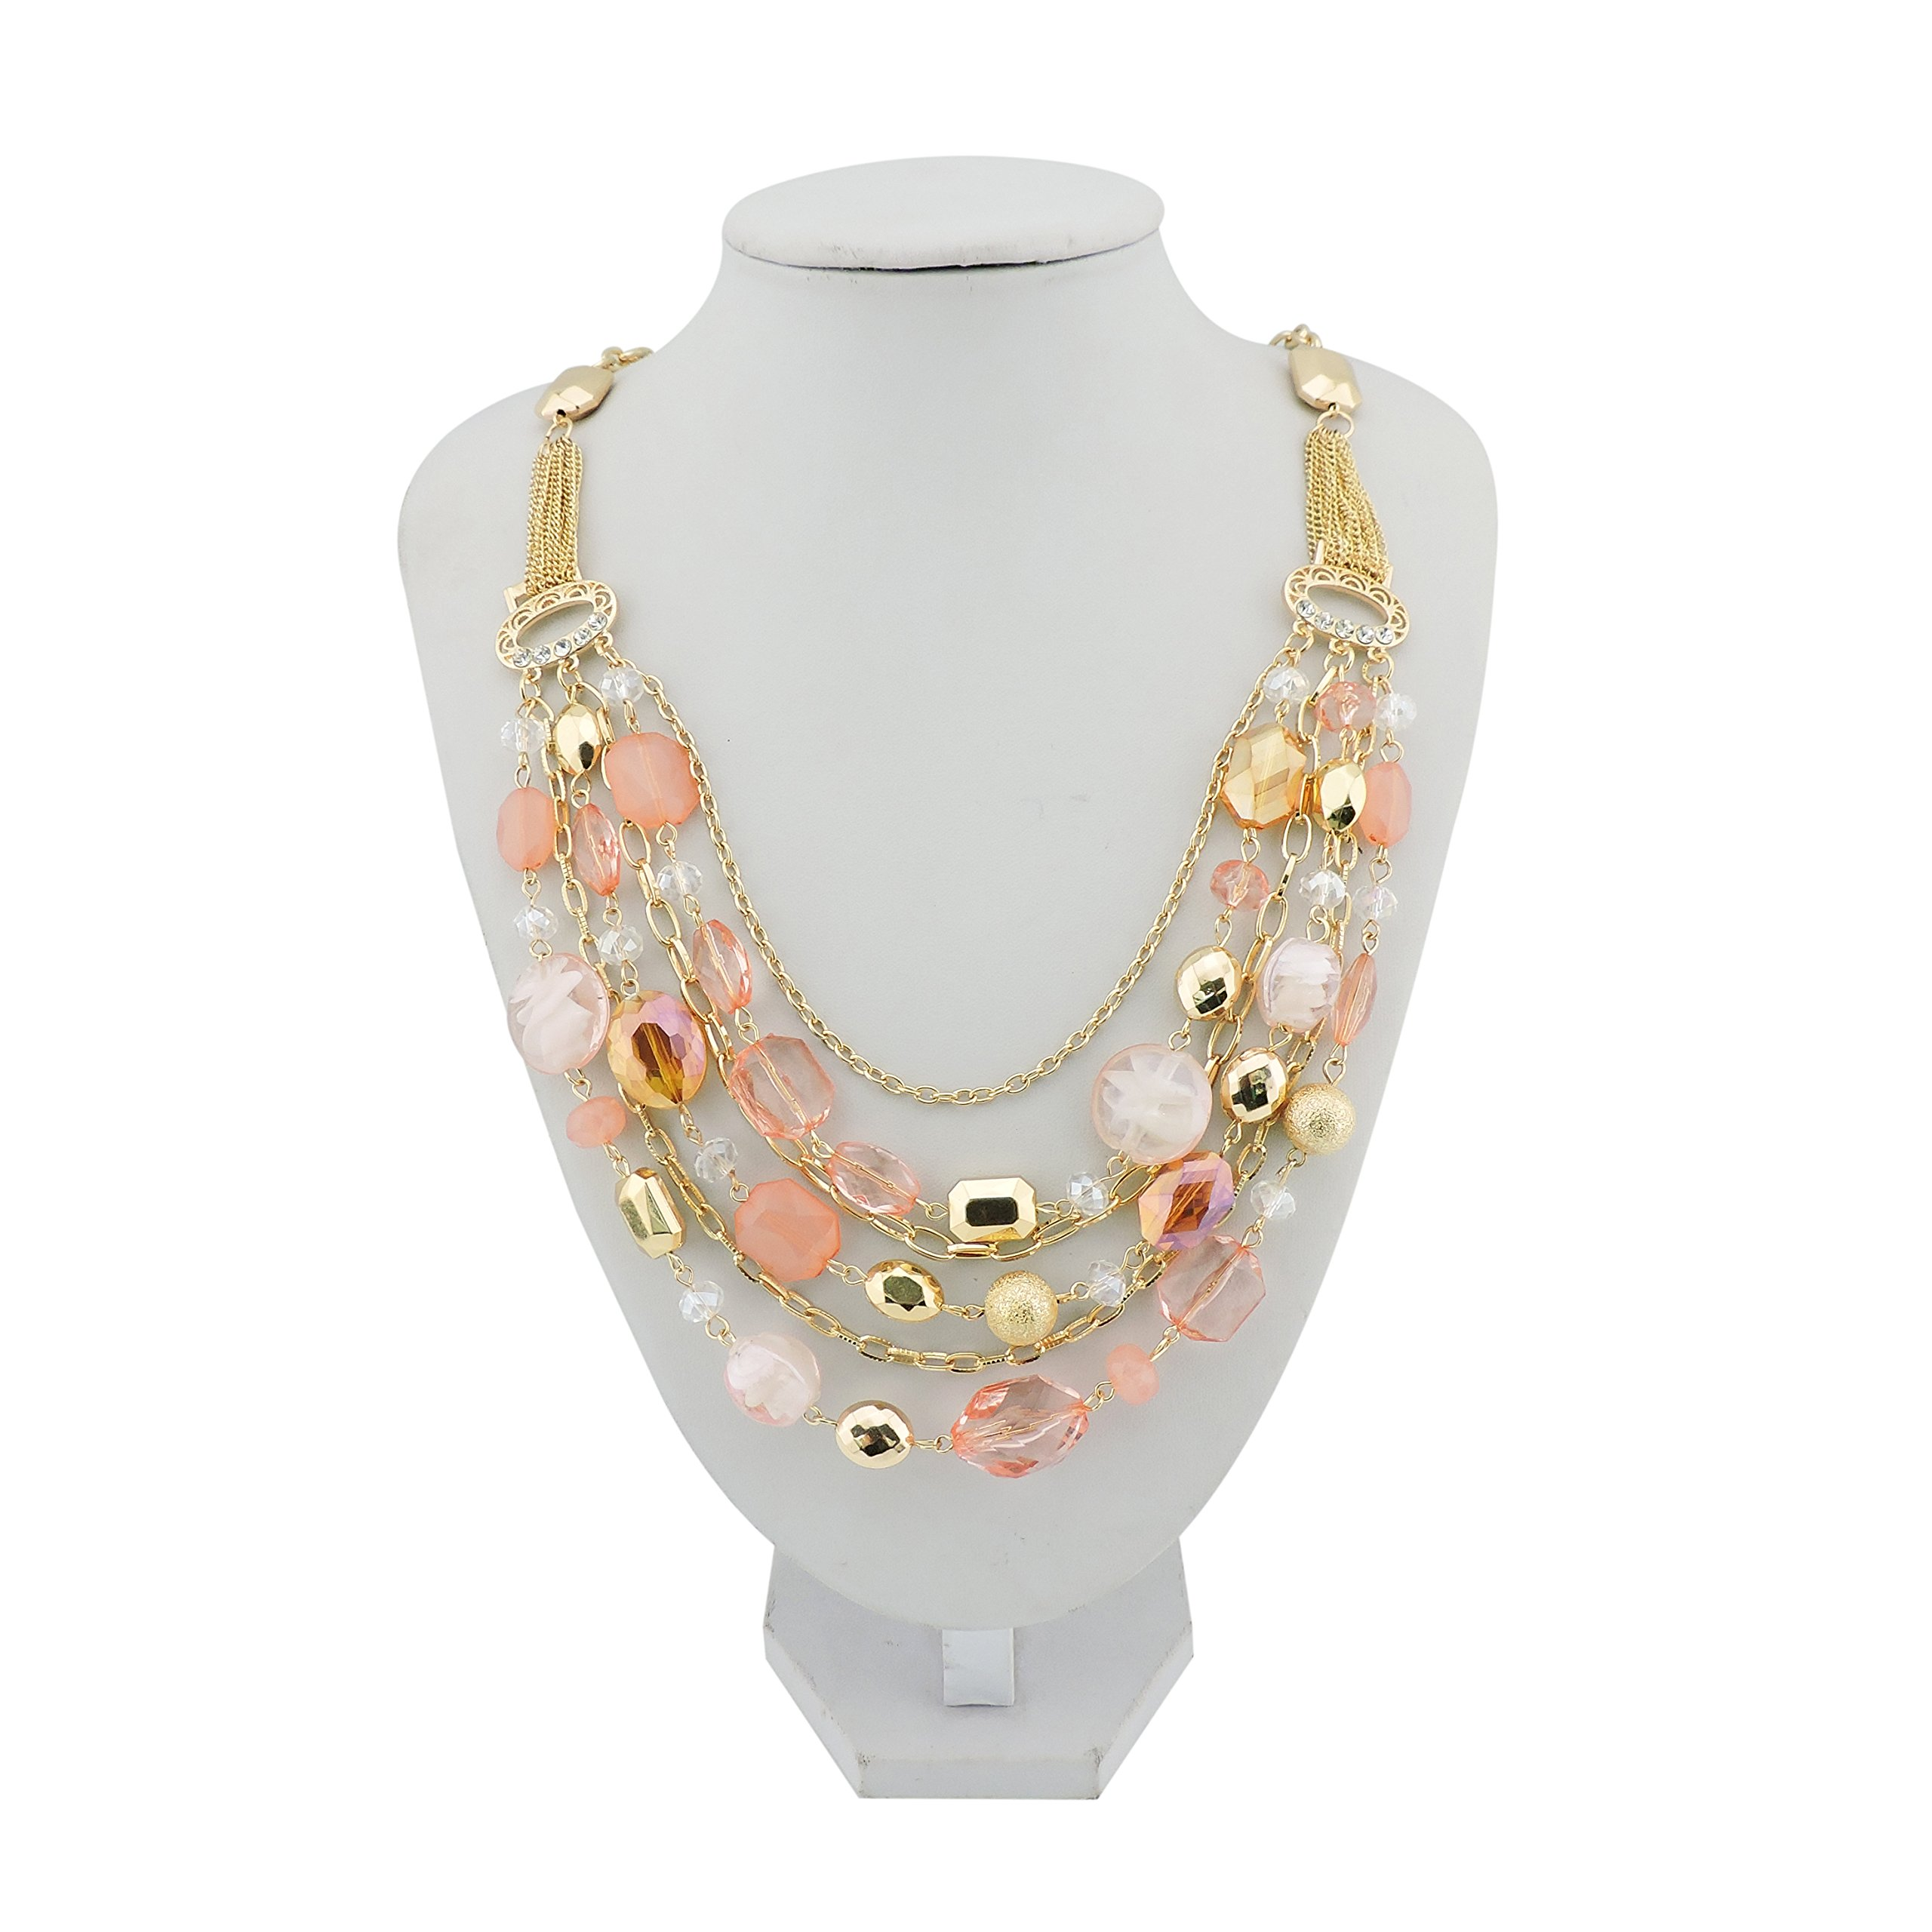 Bocar Newest Multi Layer Chain Crystal Colored Glaze Statement Women Necklace (NK-10061-peach)